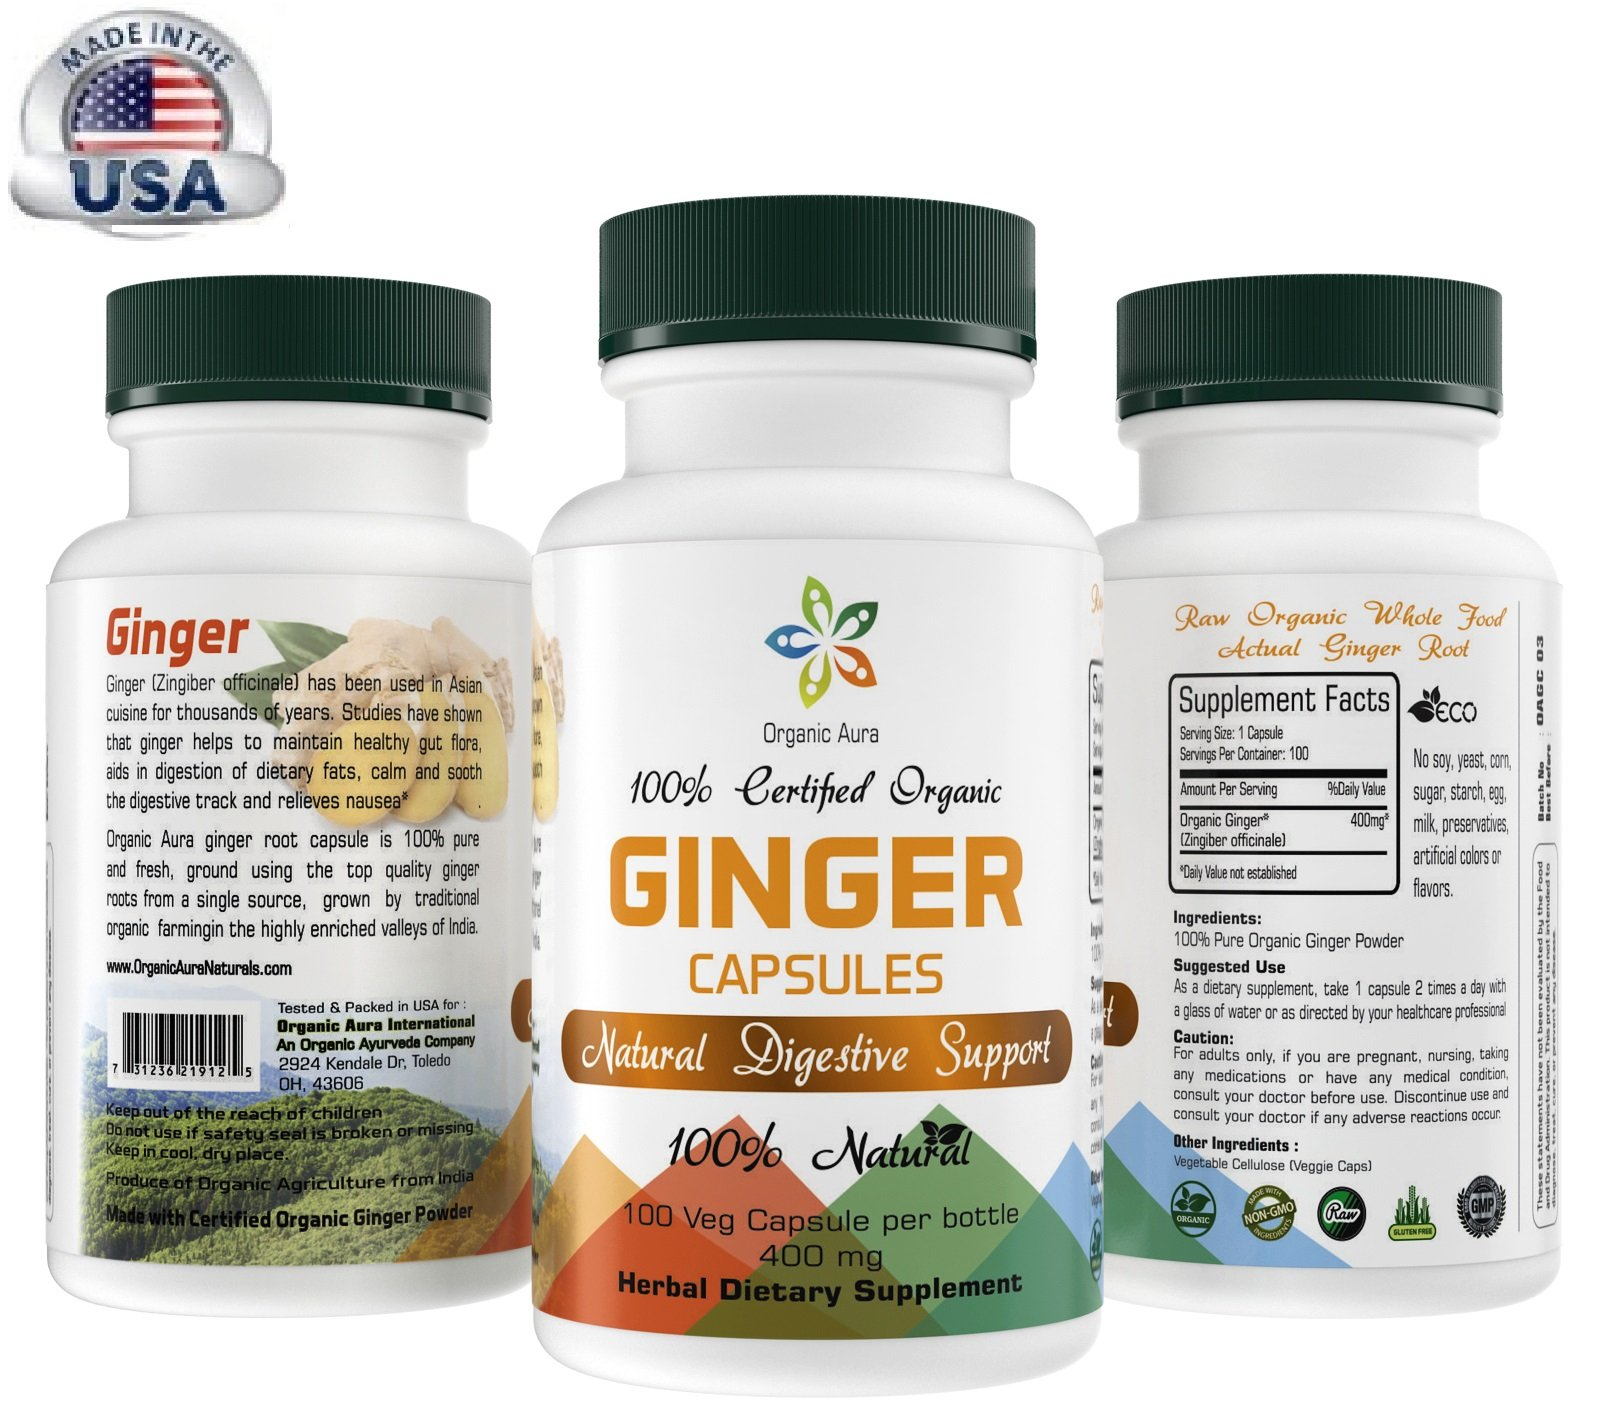 Certified Organic Ginger Capsules. Easy Swallow Veg Capsules. Natural Digestive Support. Enhances overall Health and Vitality. 100% All Natural, Raw and Original.